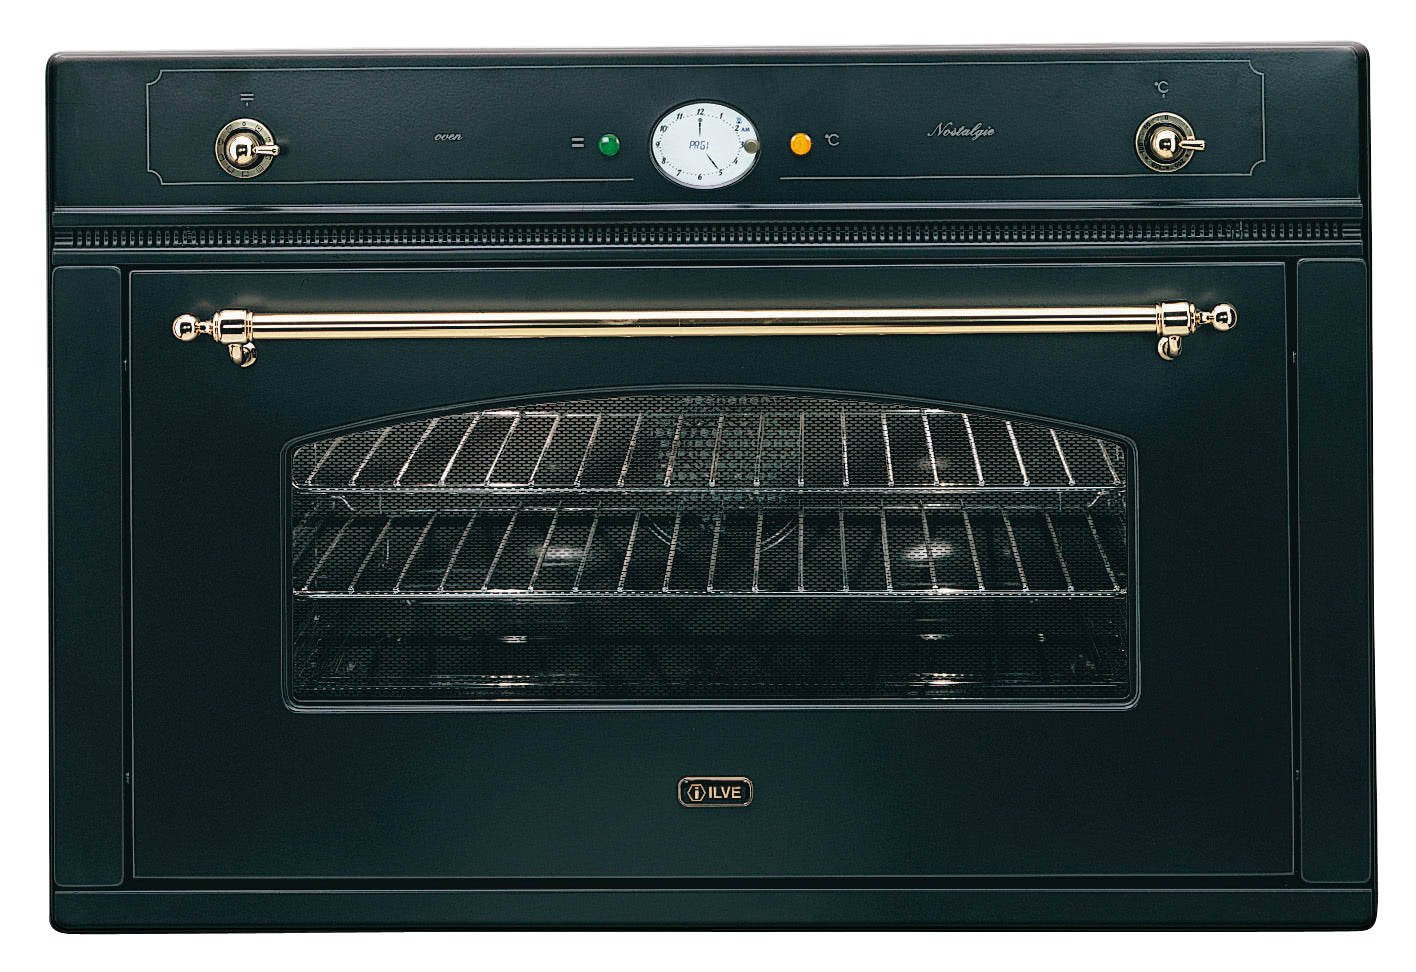 Ilve 900NMP Appliances 90cm covenction oven